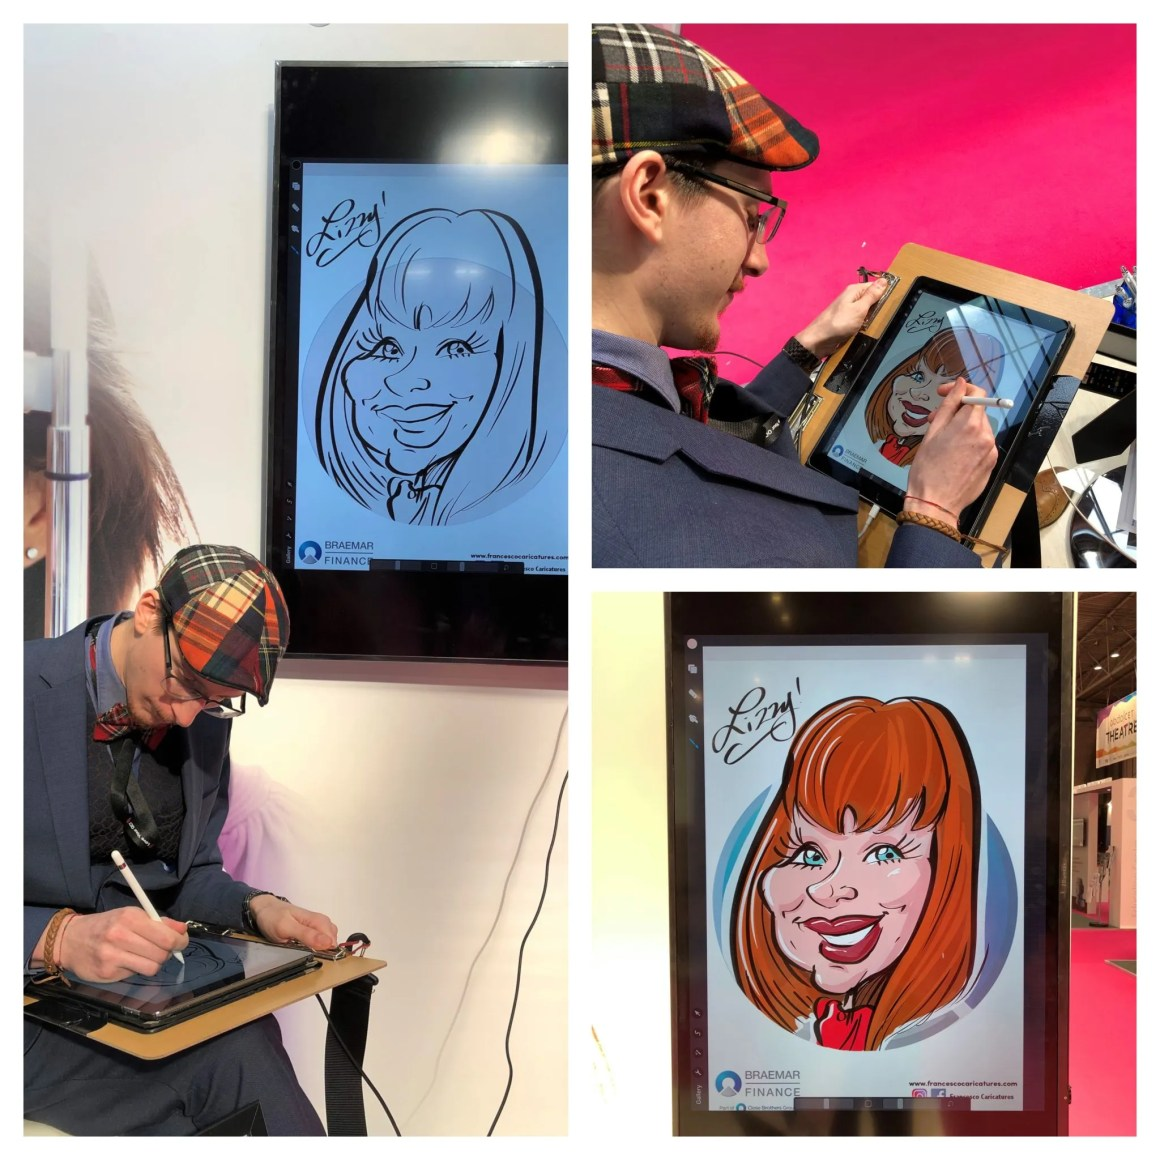 Optrafair Exchange 2019 caricature